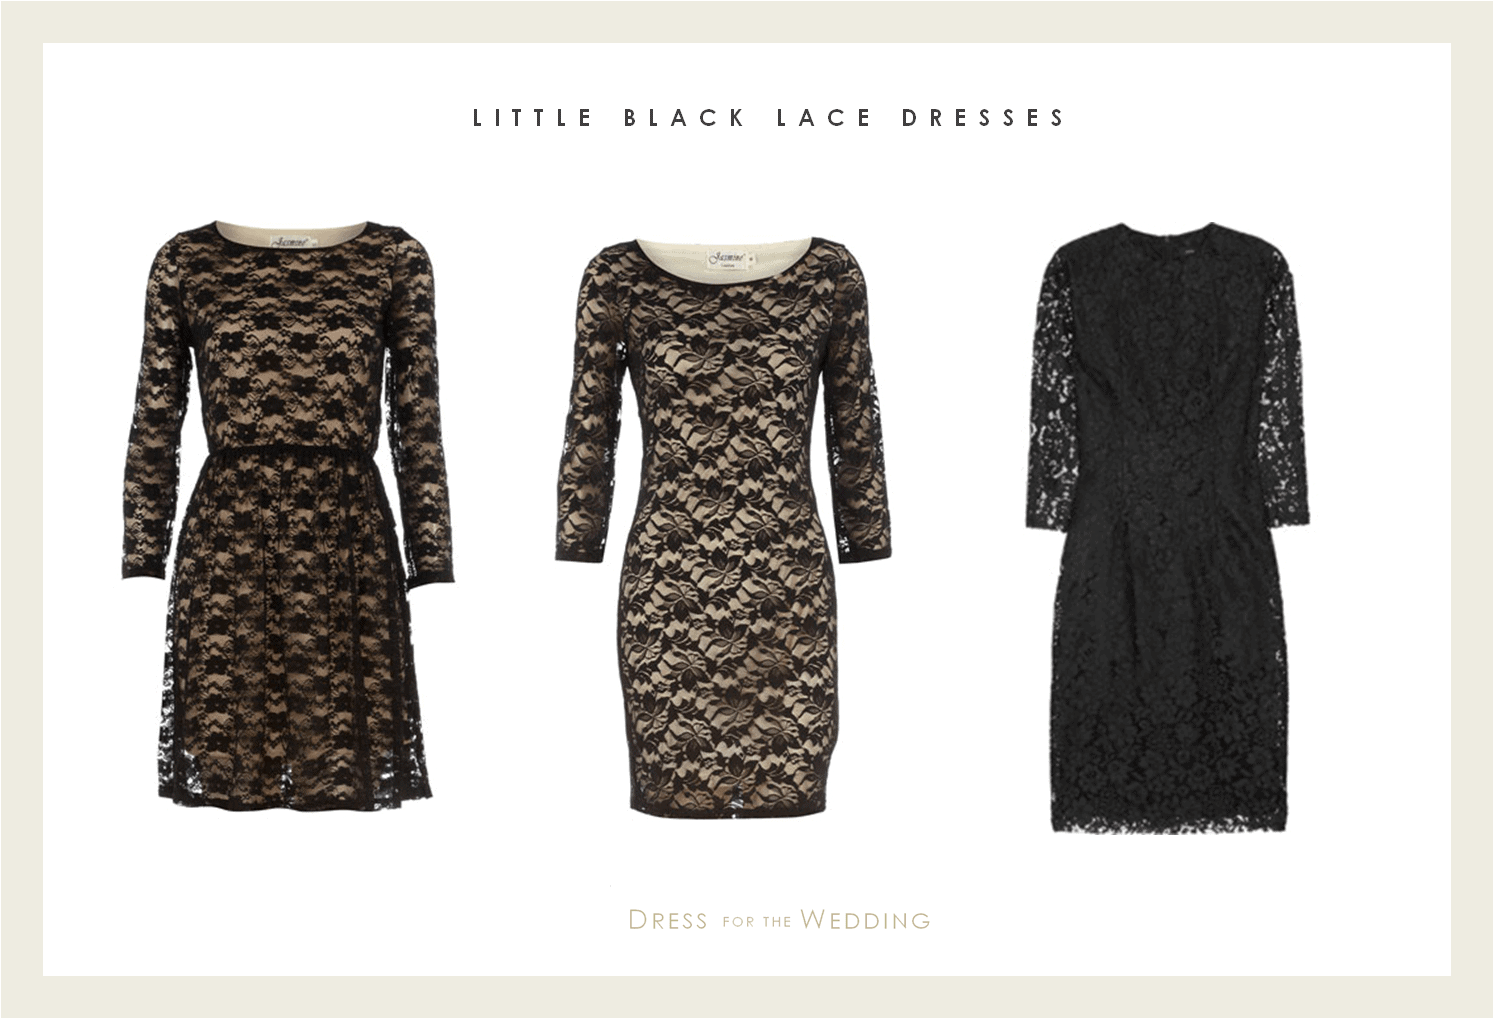 How To Accessorize A Black Lace Dress